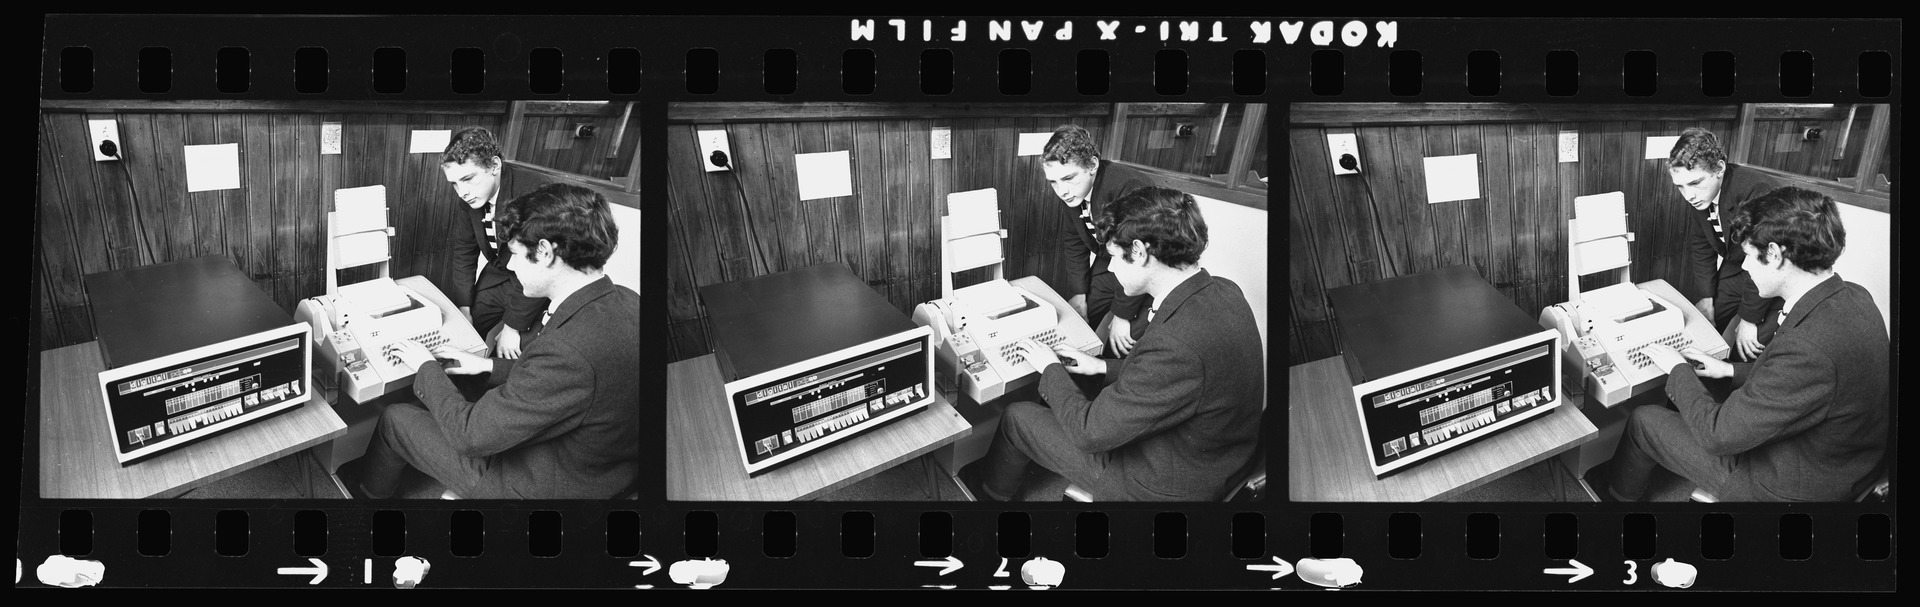 Negative strip from the Christchurch Star Archive showing Christ College students and a PDP8 Model E computer